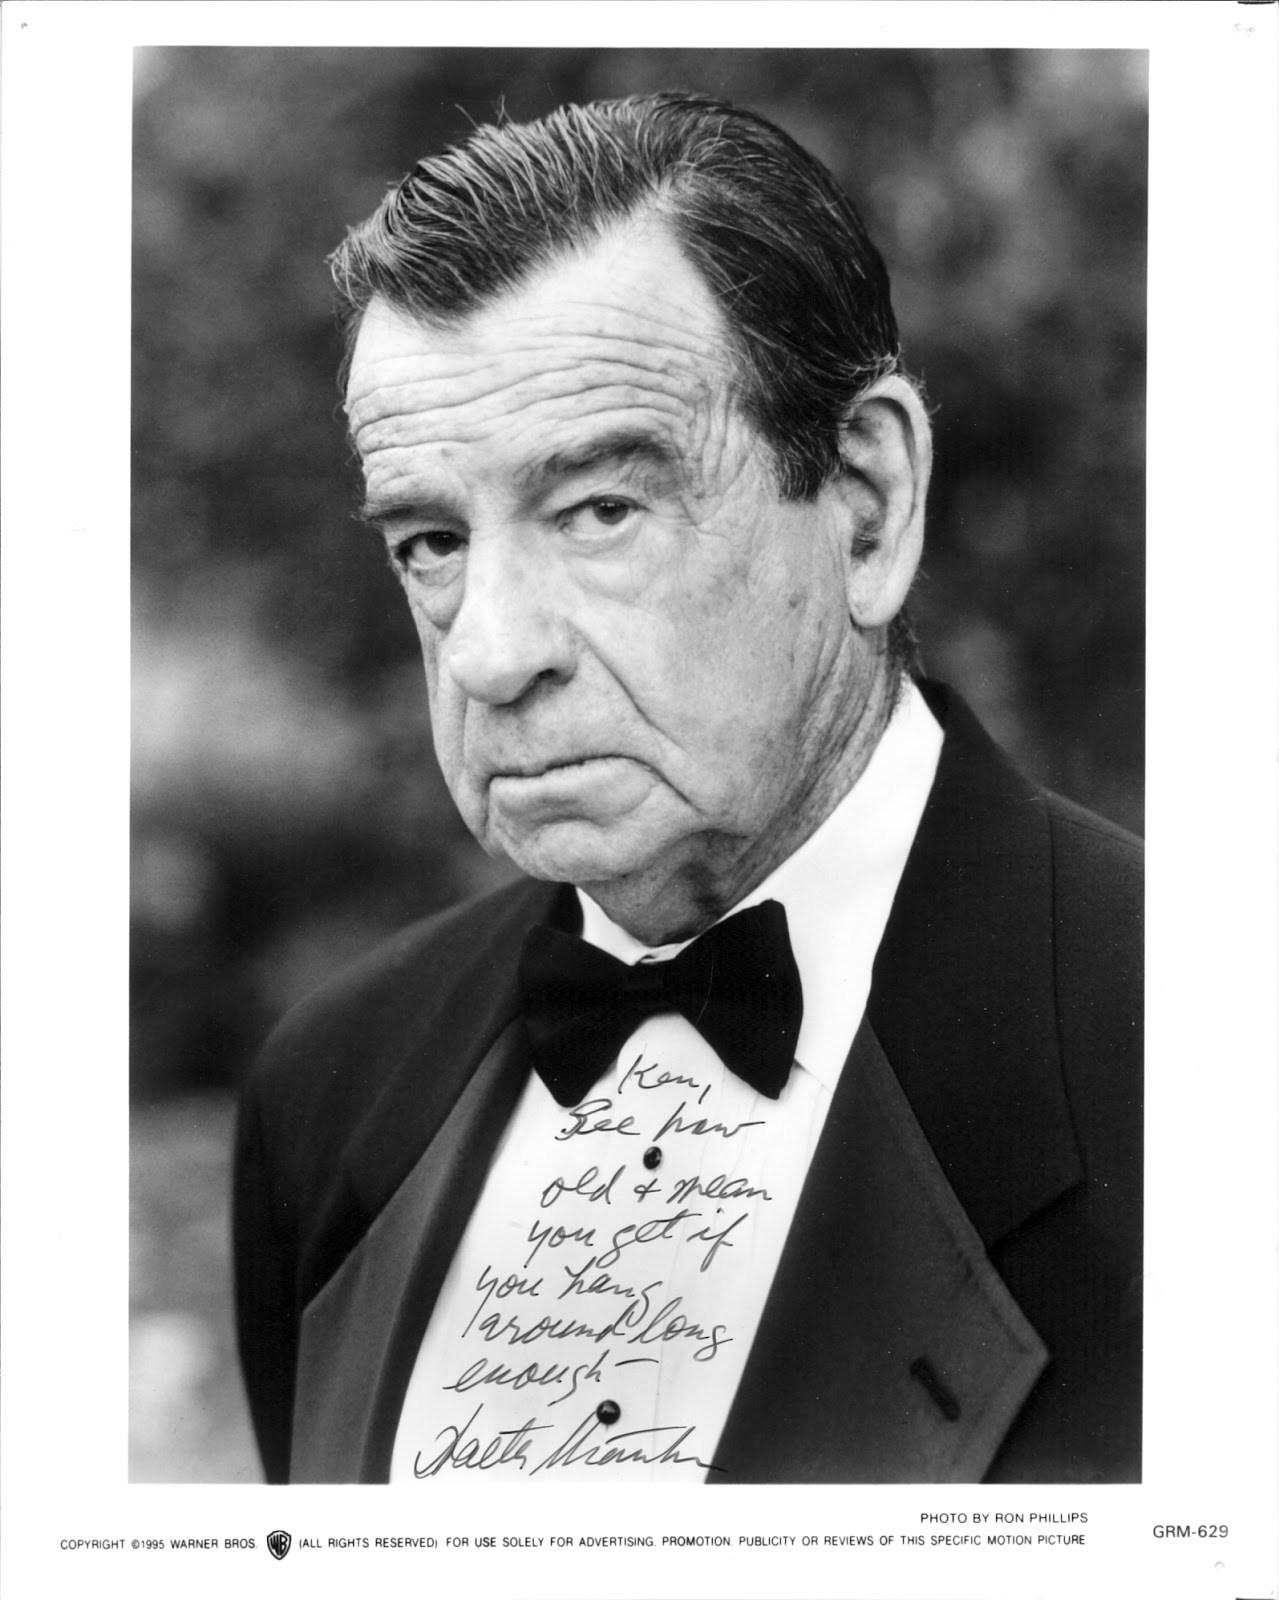 walter matthau filmekwalter matthau actor, walter matthau funny, walter matthau oscar speech, walter matthau 1974, walter matthau jack lemmon movies, walter matthau oscar, walter matthau jack lemmon, walter matthau death, walter matthau dennis the menace, walter matthau and jack lemmon friendship, walter matthau einstein, walter matthau grave, walter matthau and jack lemmon films, walter matthau odd couple, walter matthau jack lemmon movies list, walter matthau y jack lemmon, walter matthau imdb, walter matthau net worth, walter matthau filmek, walter matthau movies list